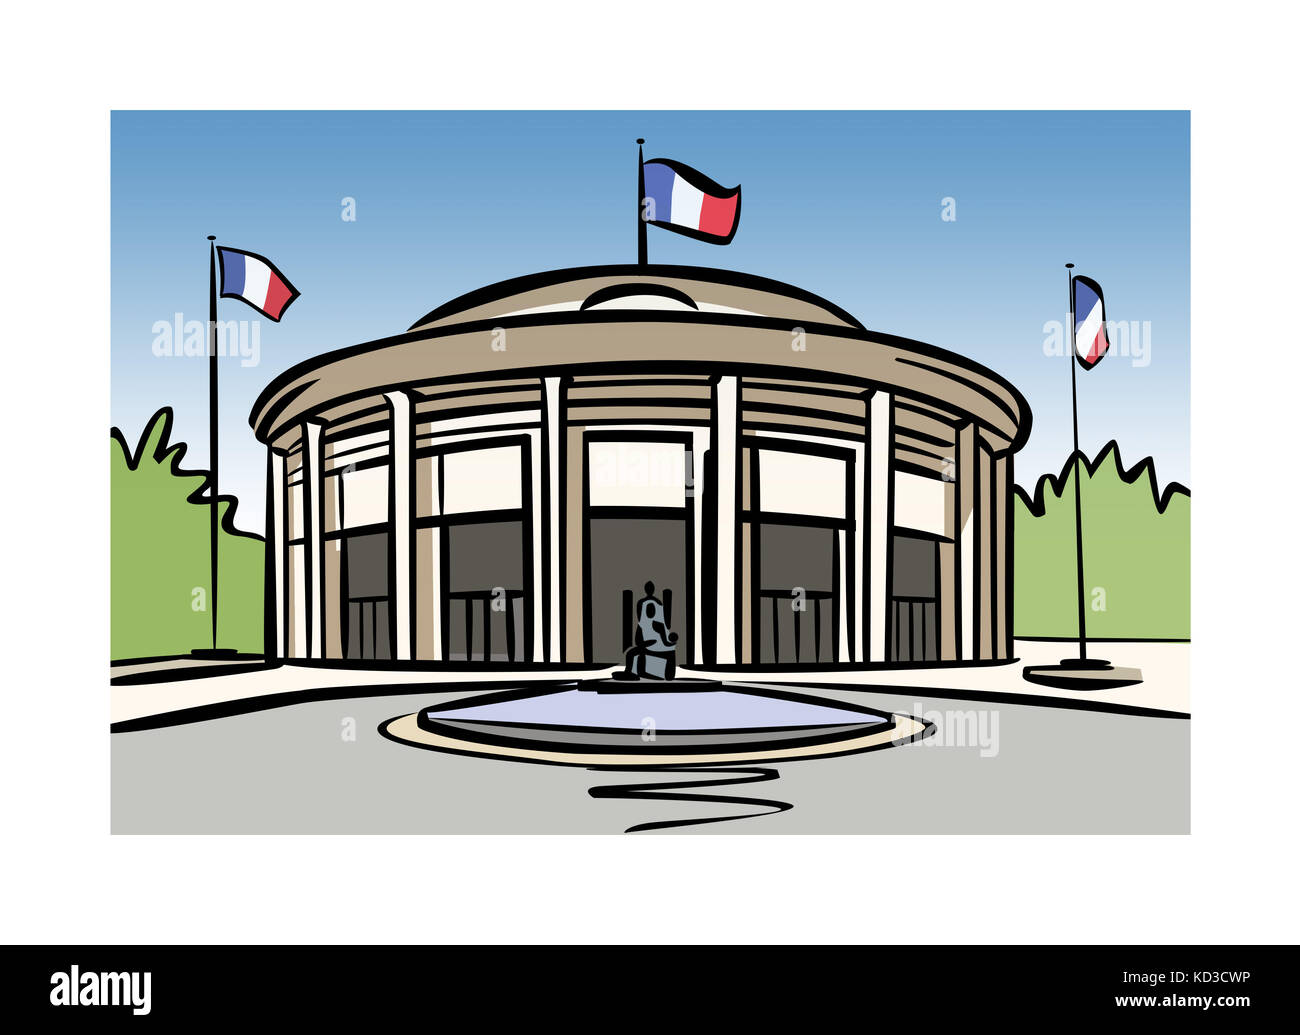 Illustration of the Economic, Social and Environmental Council of France Stock Photo